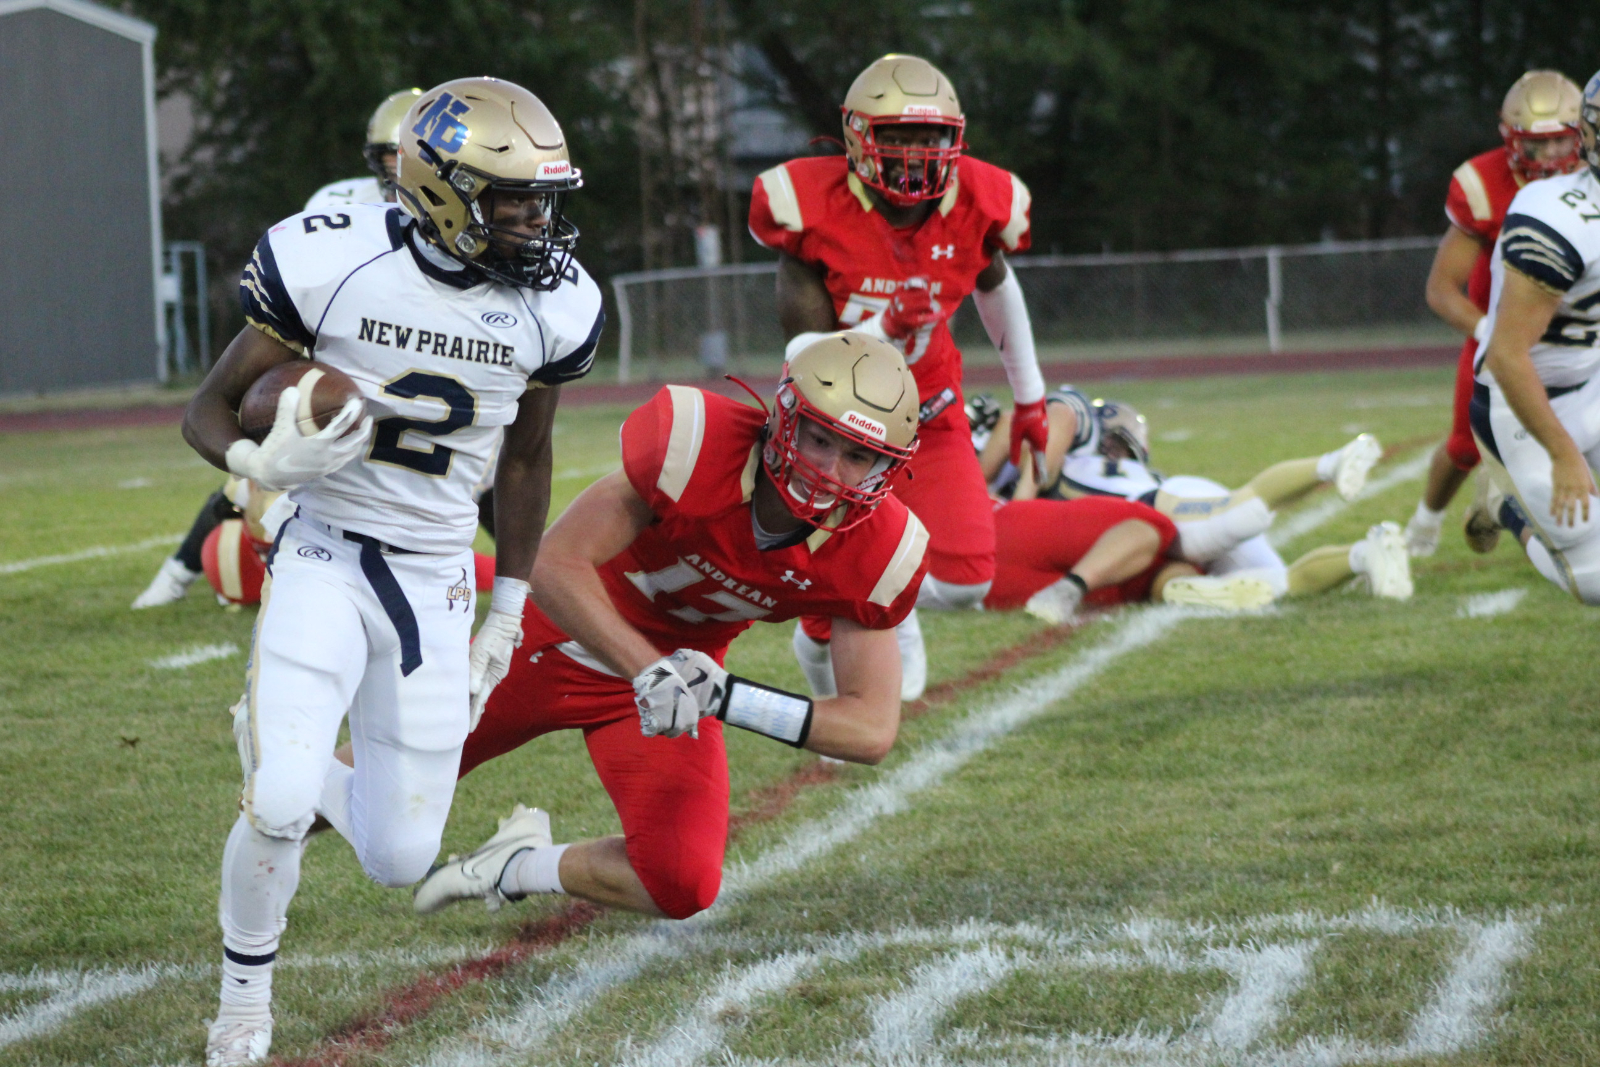 Varsity Football @ Andrean 9/4/2020  (Photo Gallery)